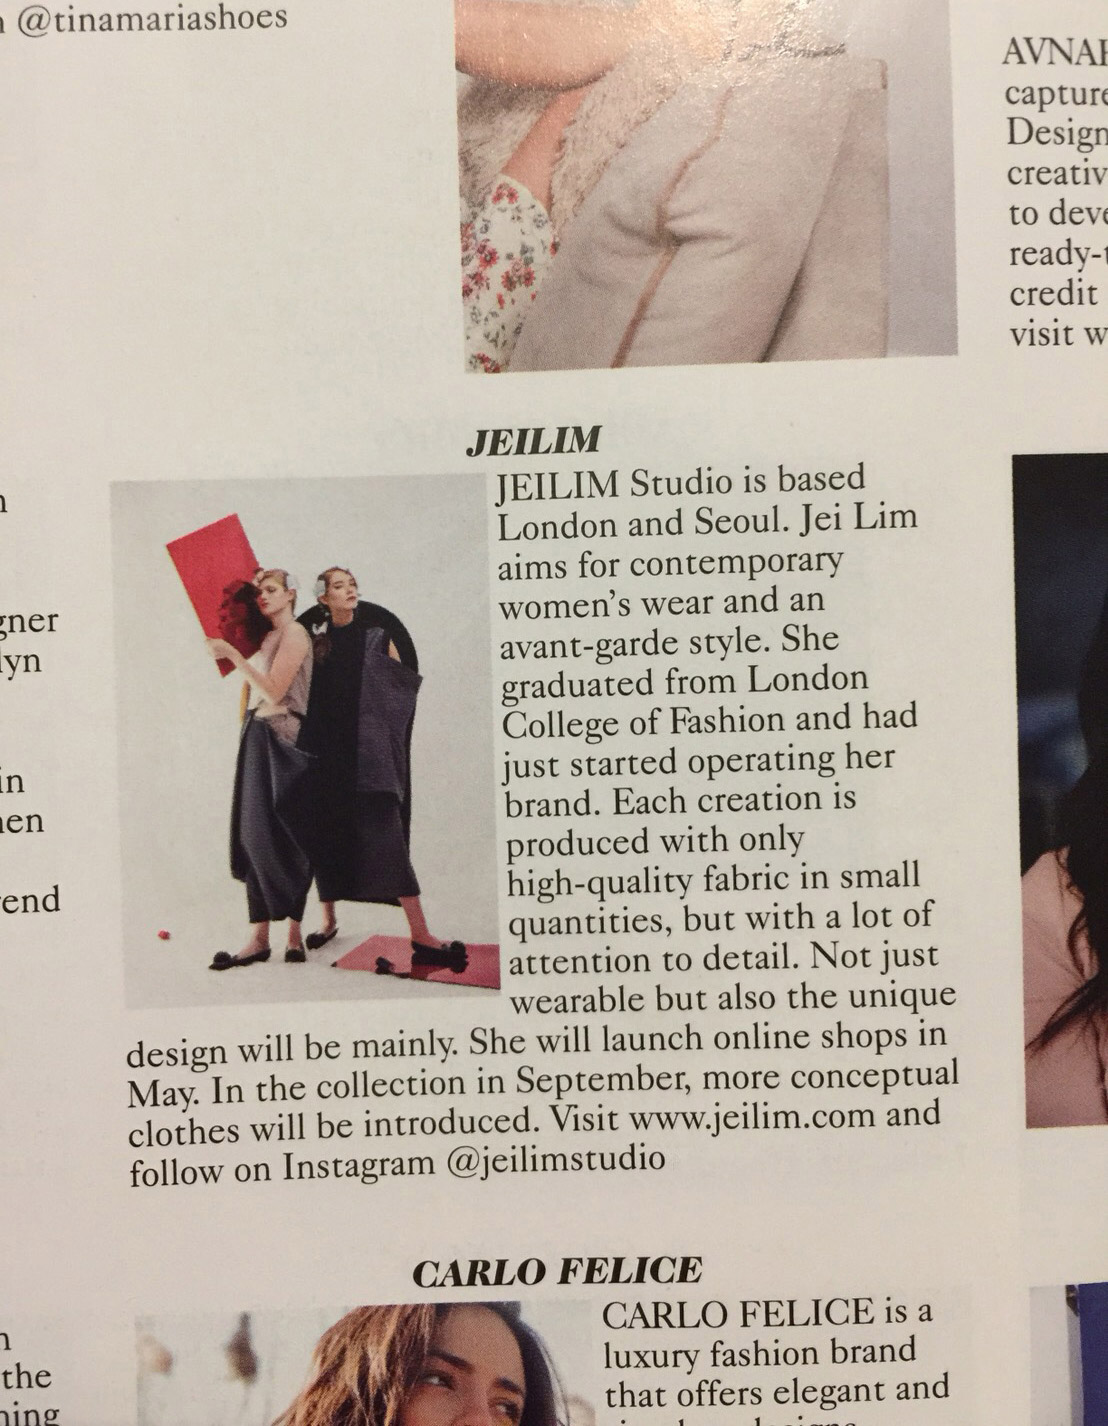 JEILIM was published in a UK VOGUE magazine